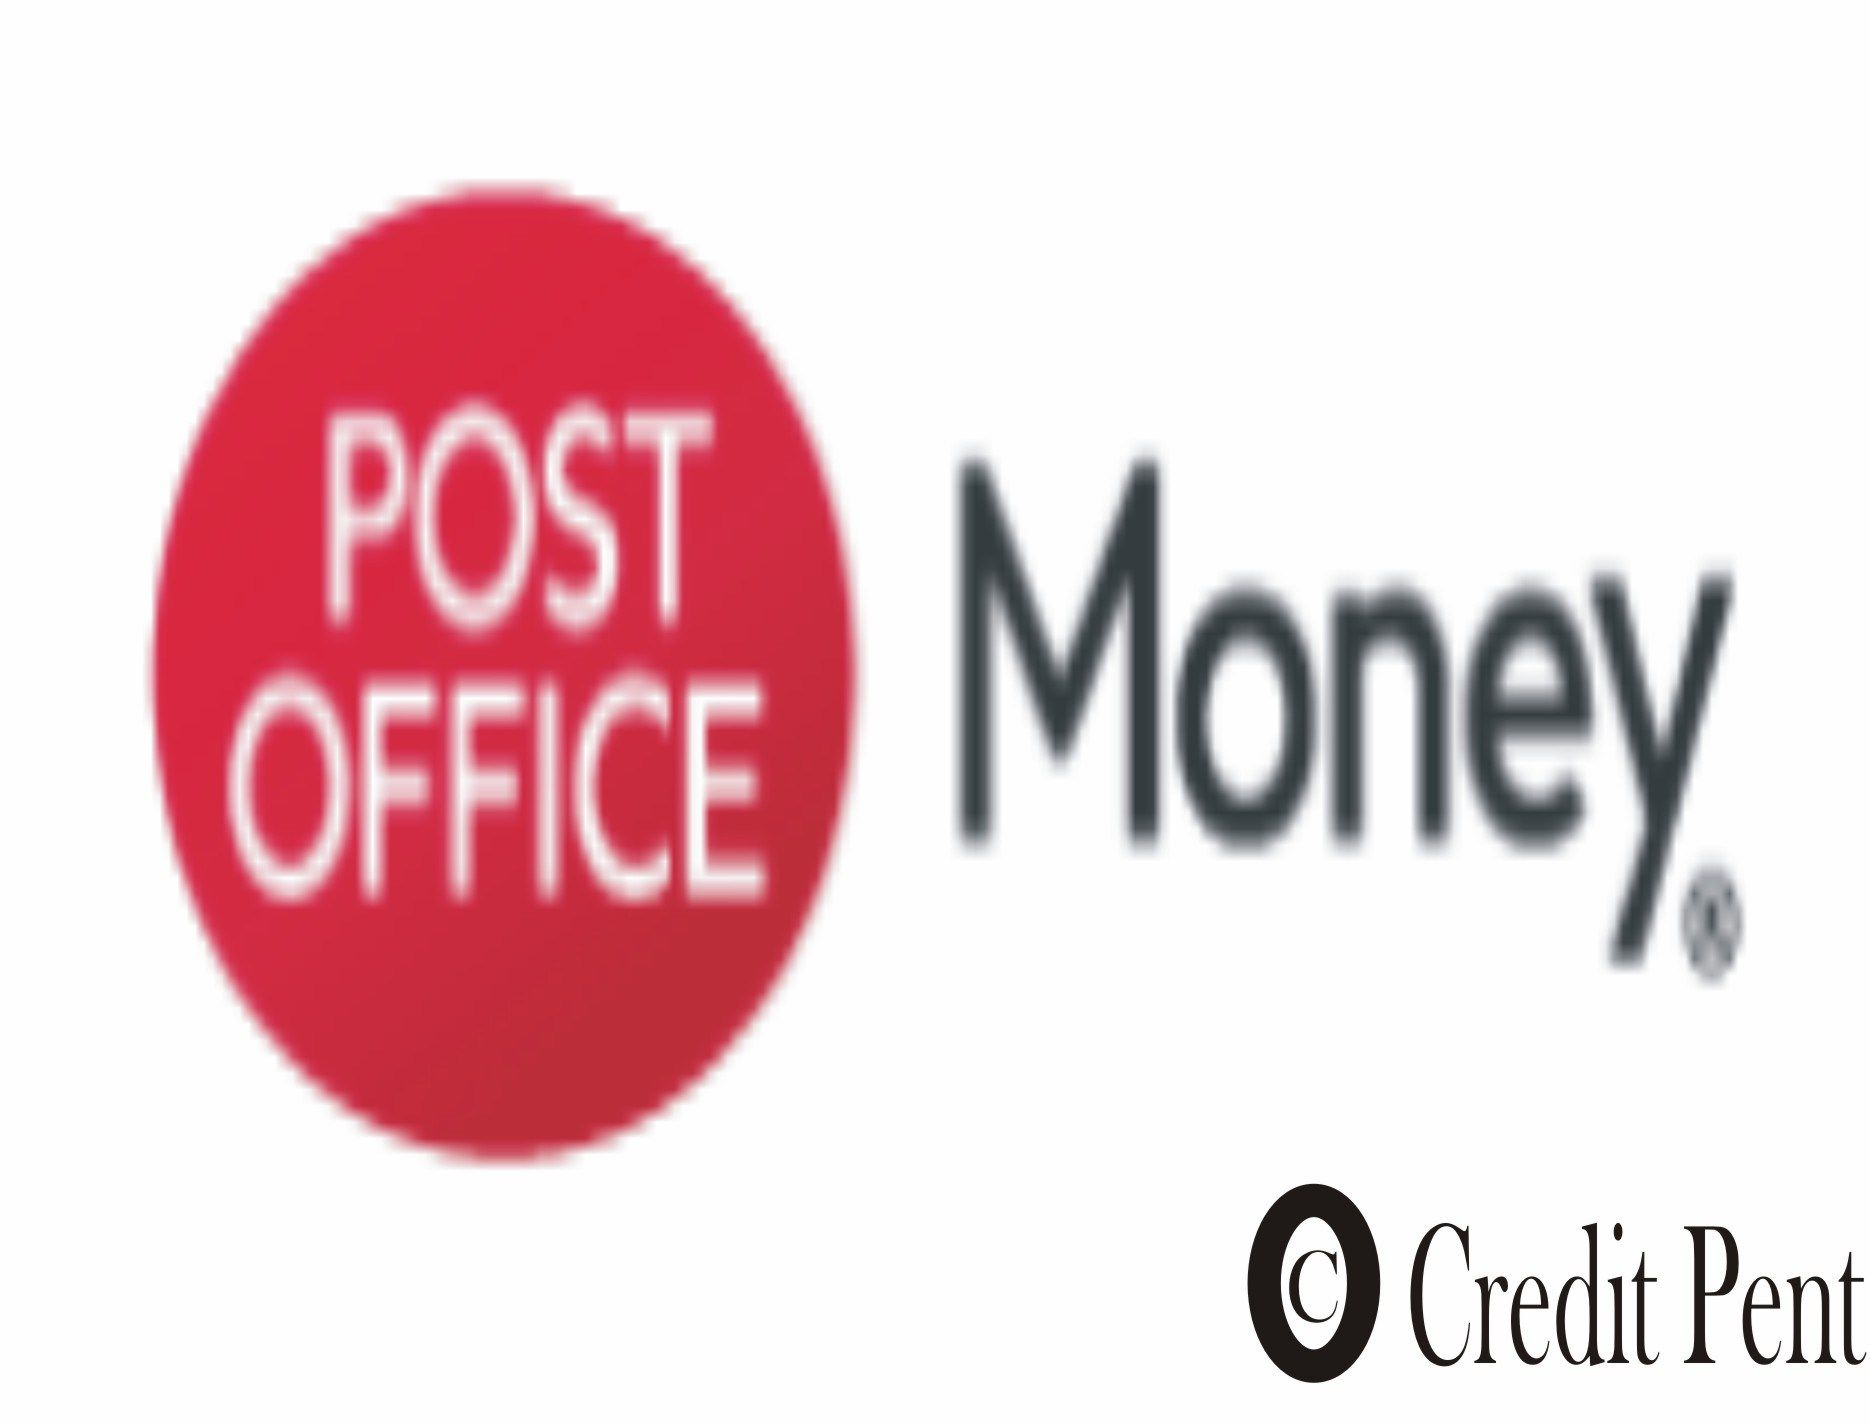 Post Office Money Credit Card Login Post Office Online Banking Online Banking Credit Card Post Office